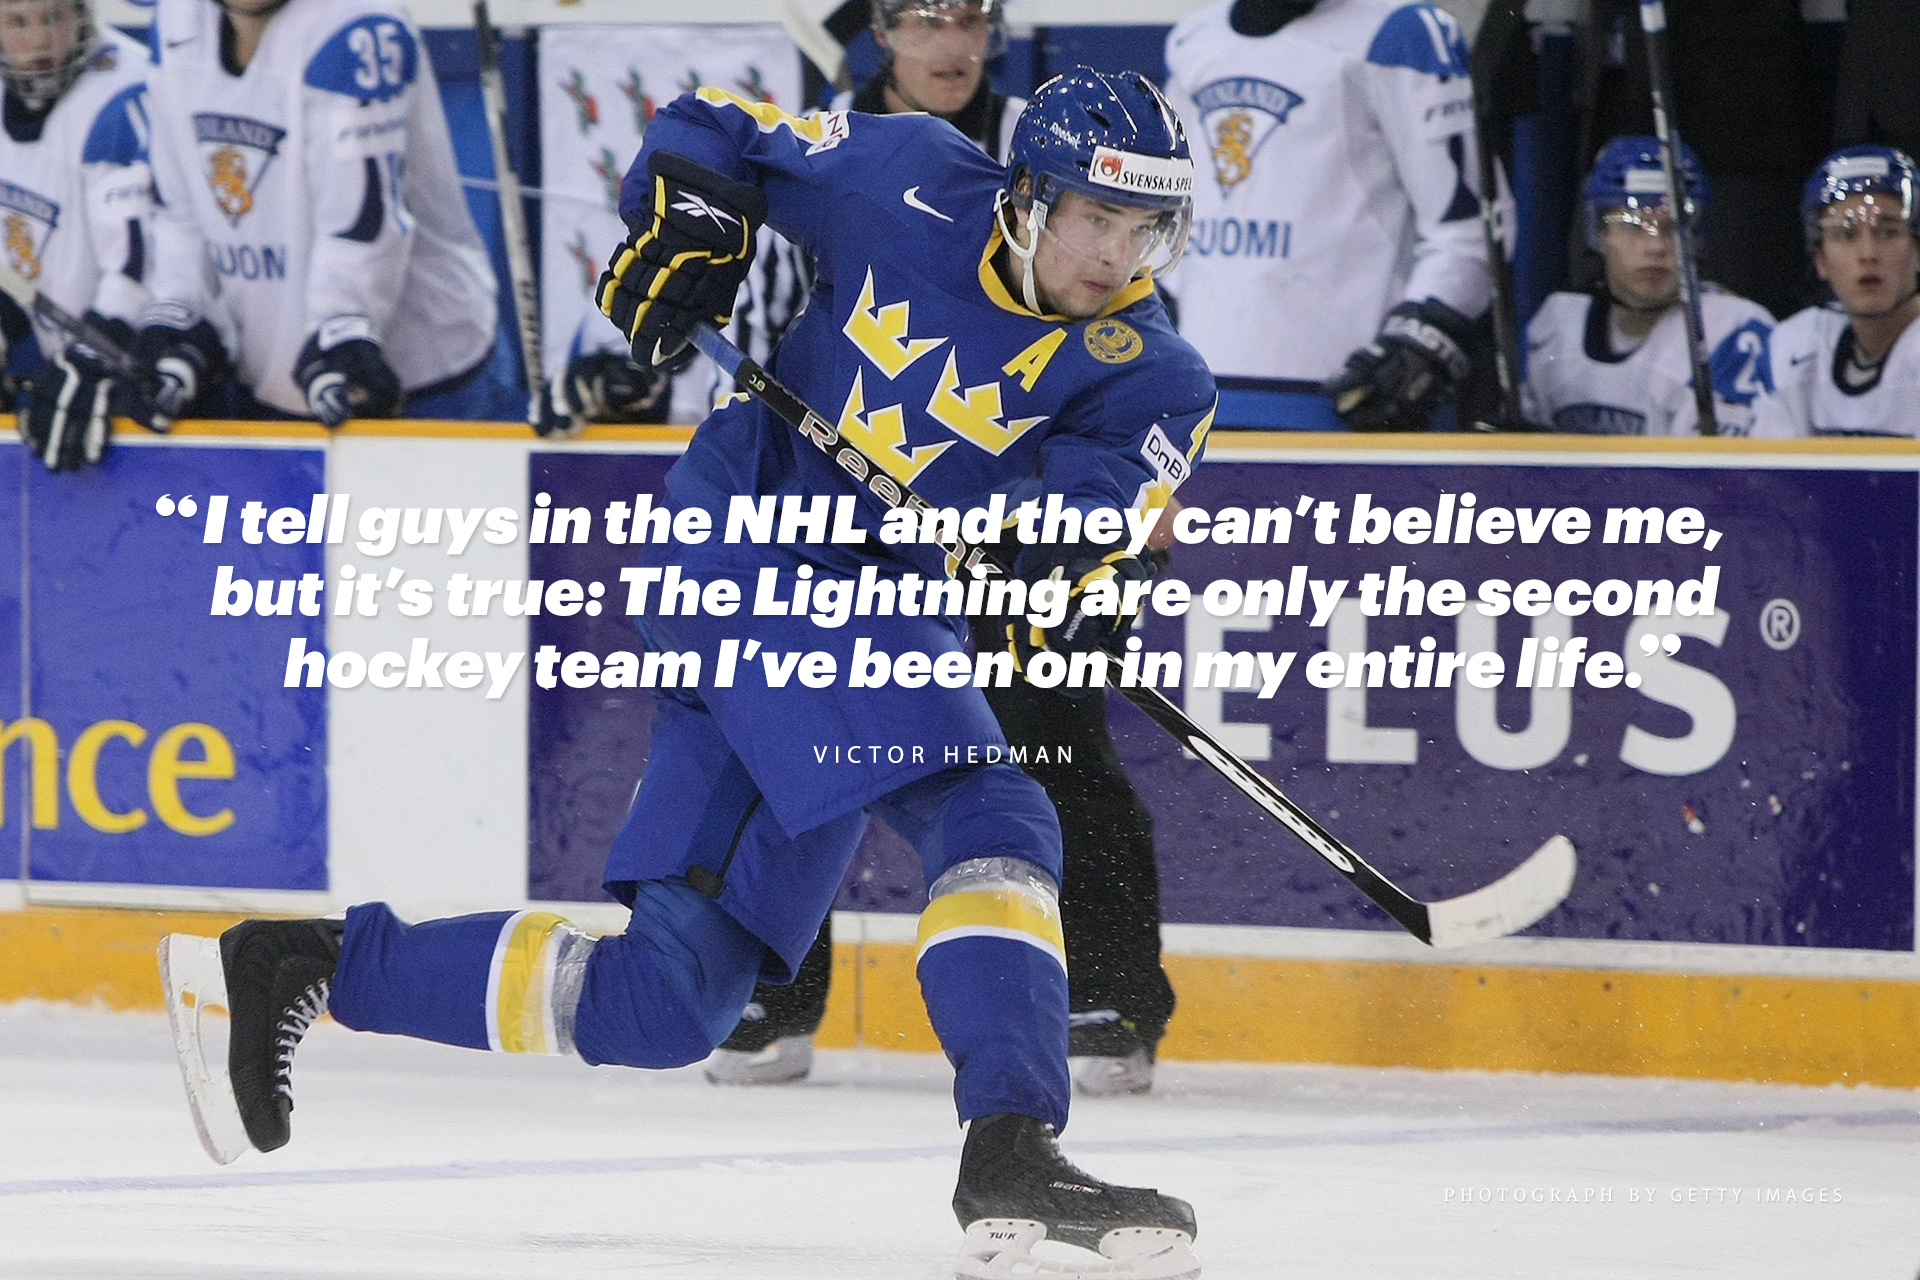 how we play hockey in sweden by victor hedman